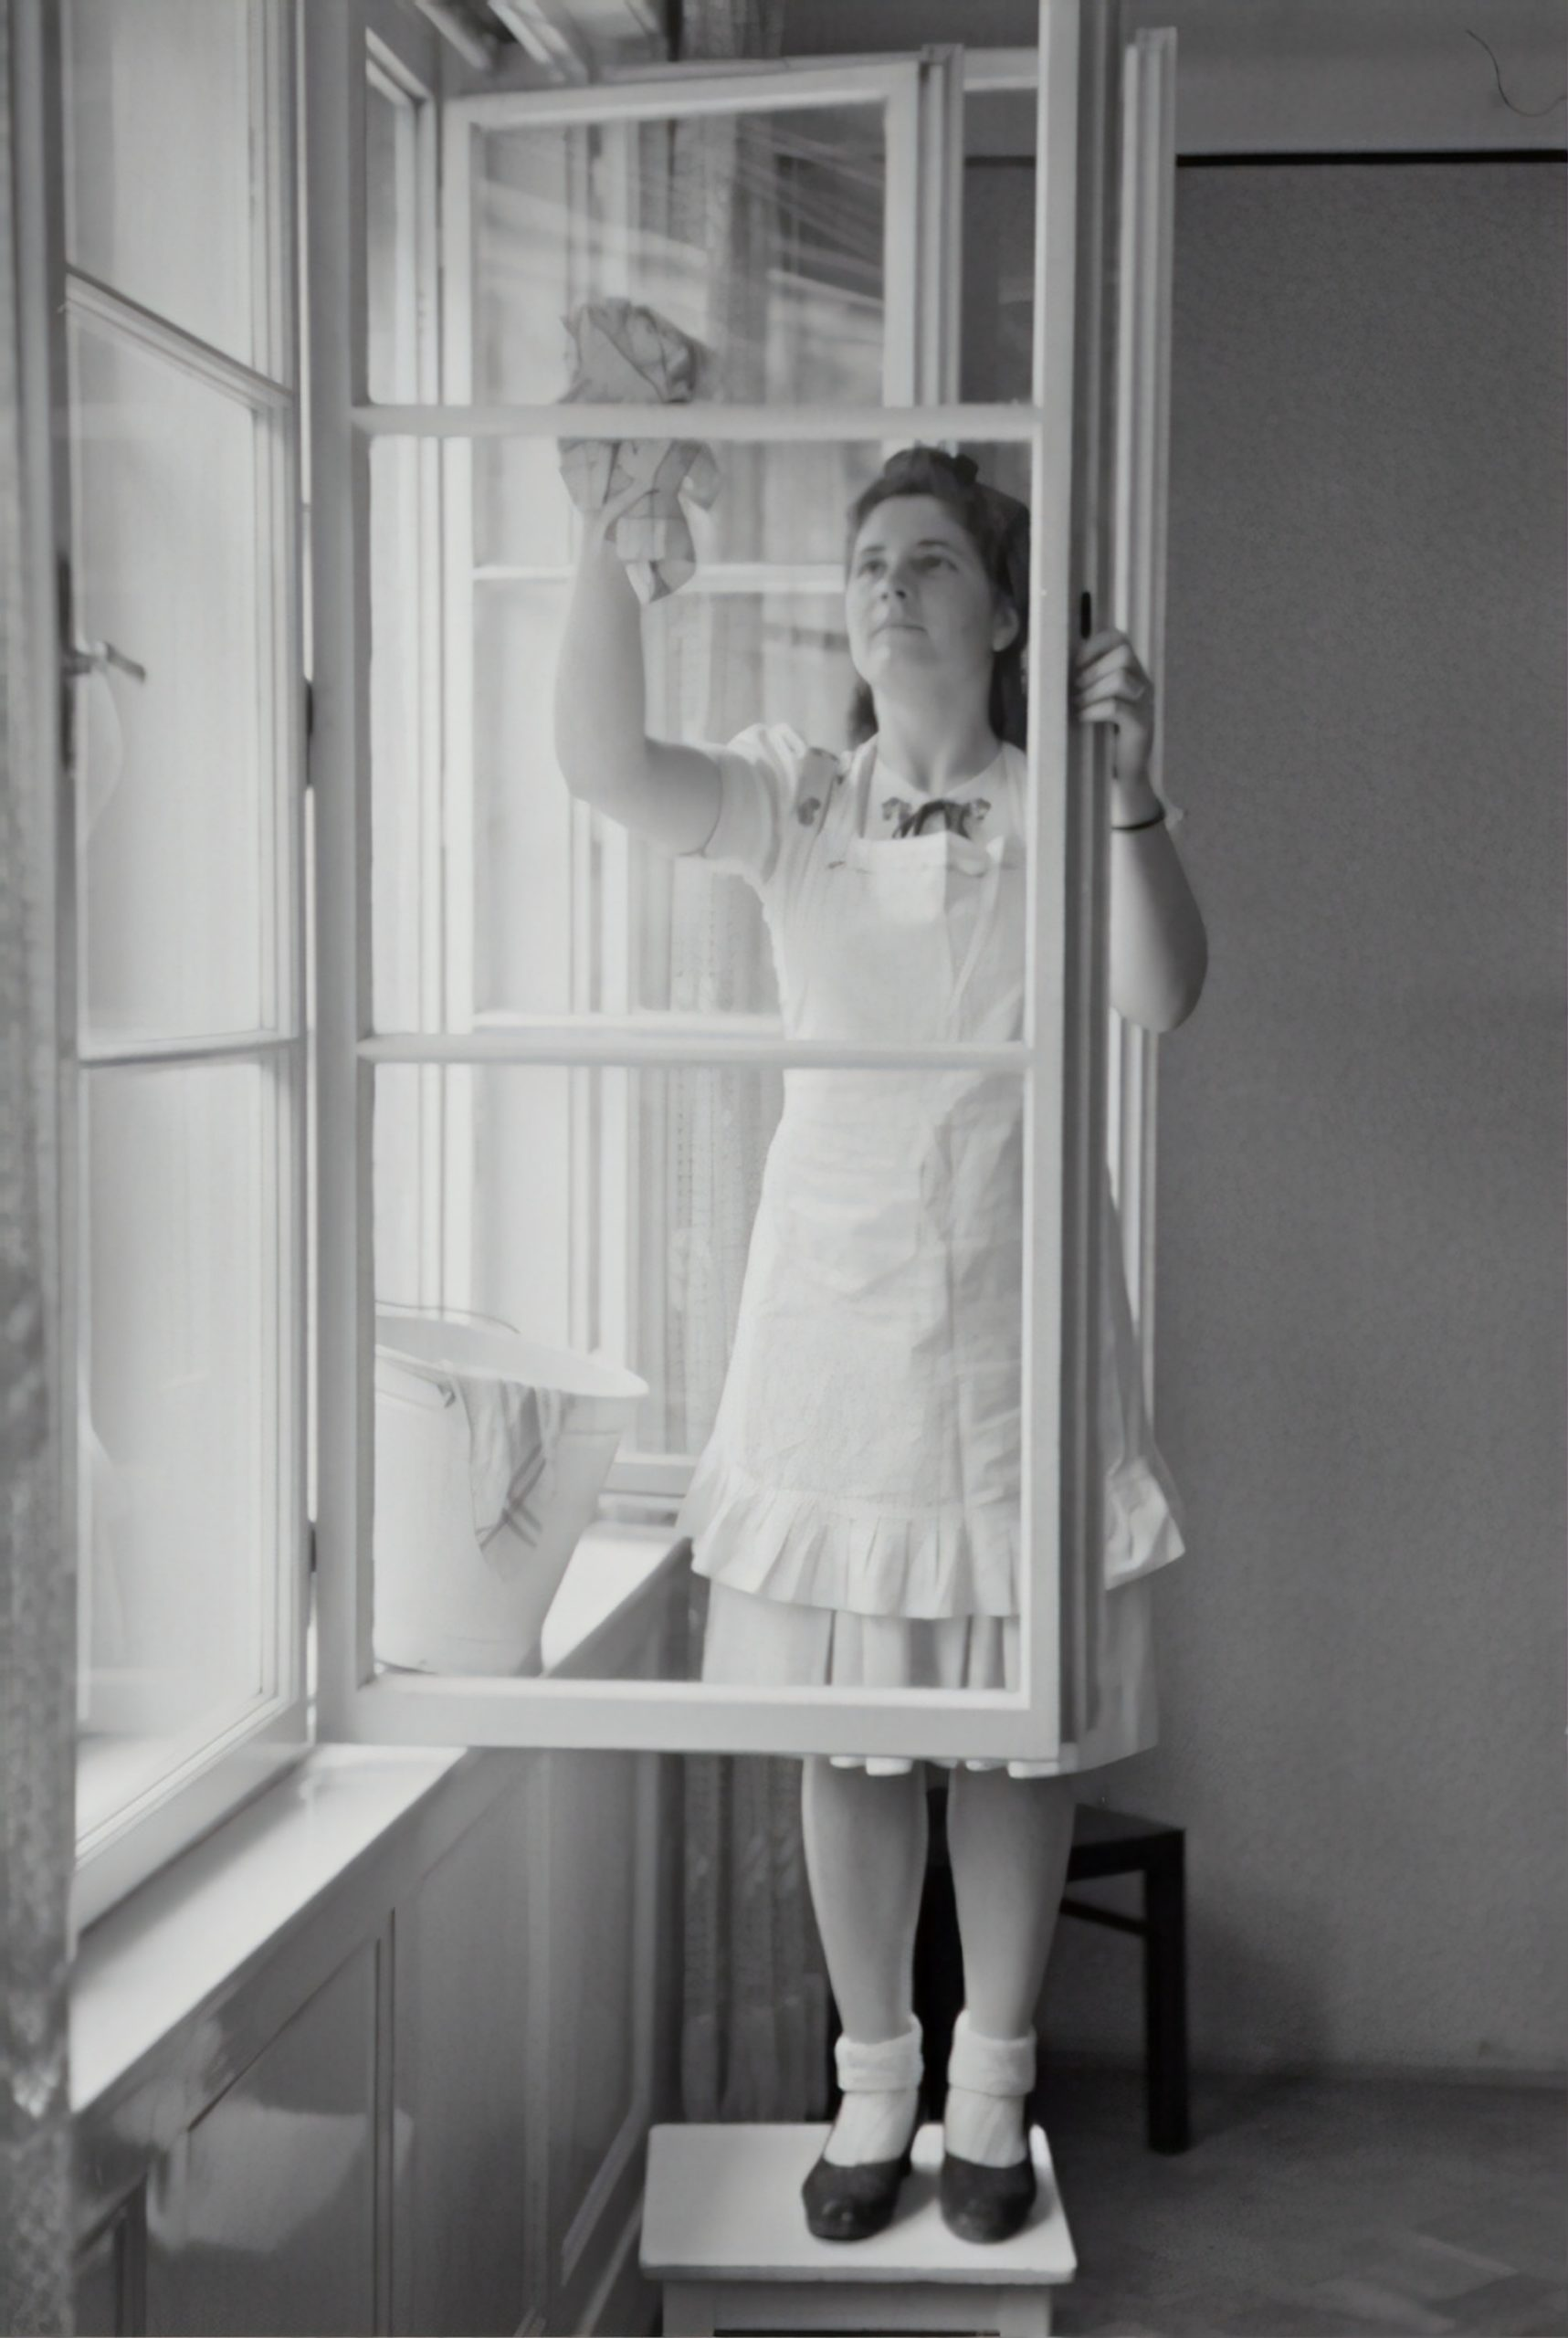 woman on a chair by a window using a better cleaning solution for an immaculate home